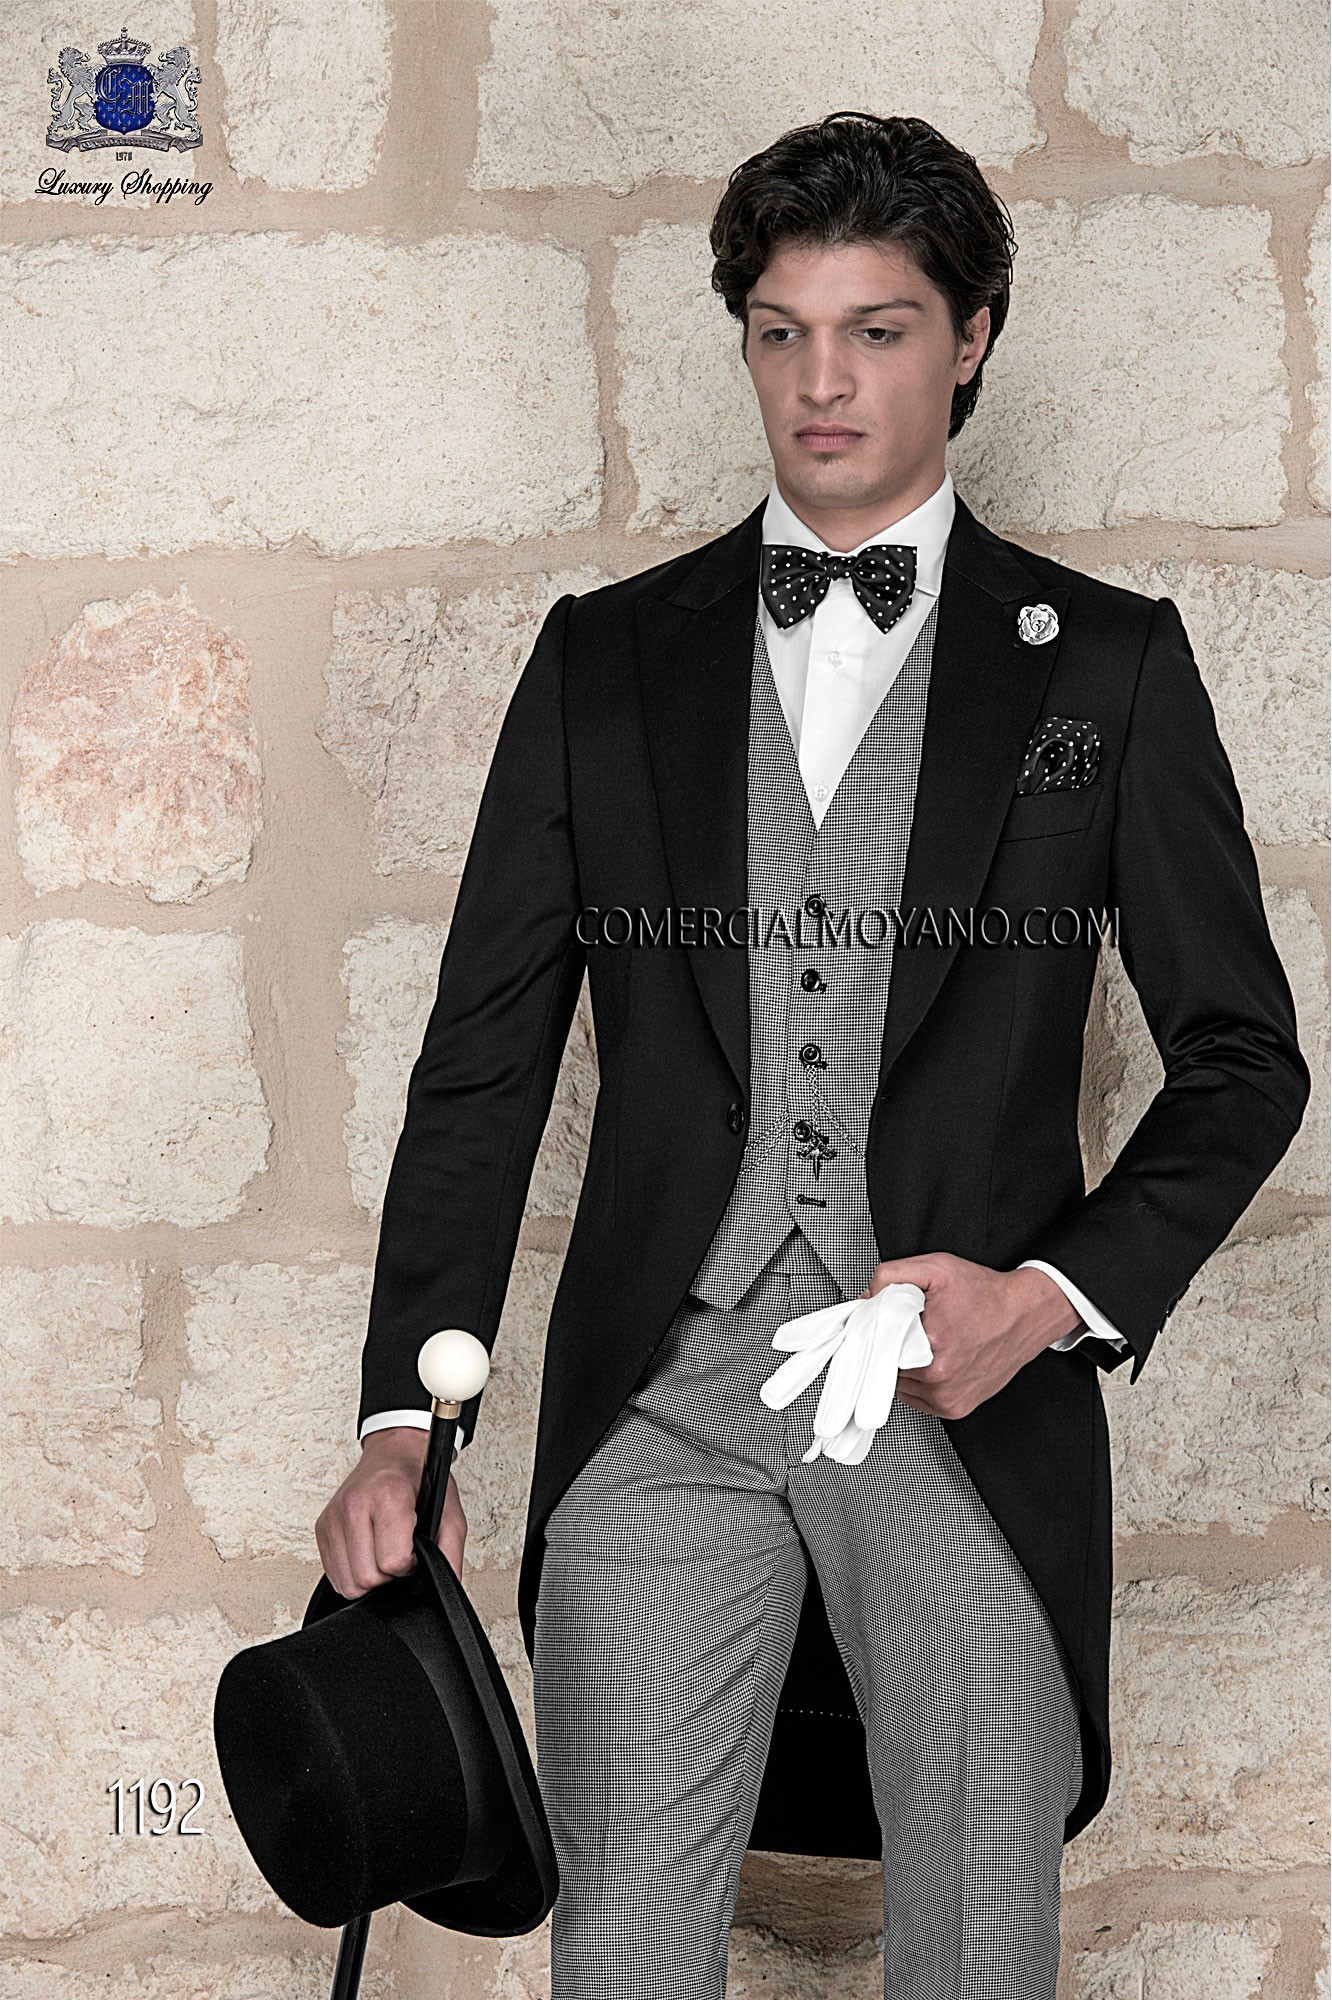 Gentleman black men wedding suit model 1192 Ottavio Nuccio Gala